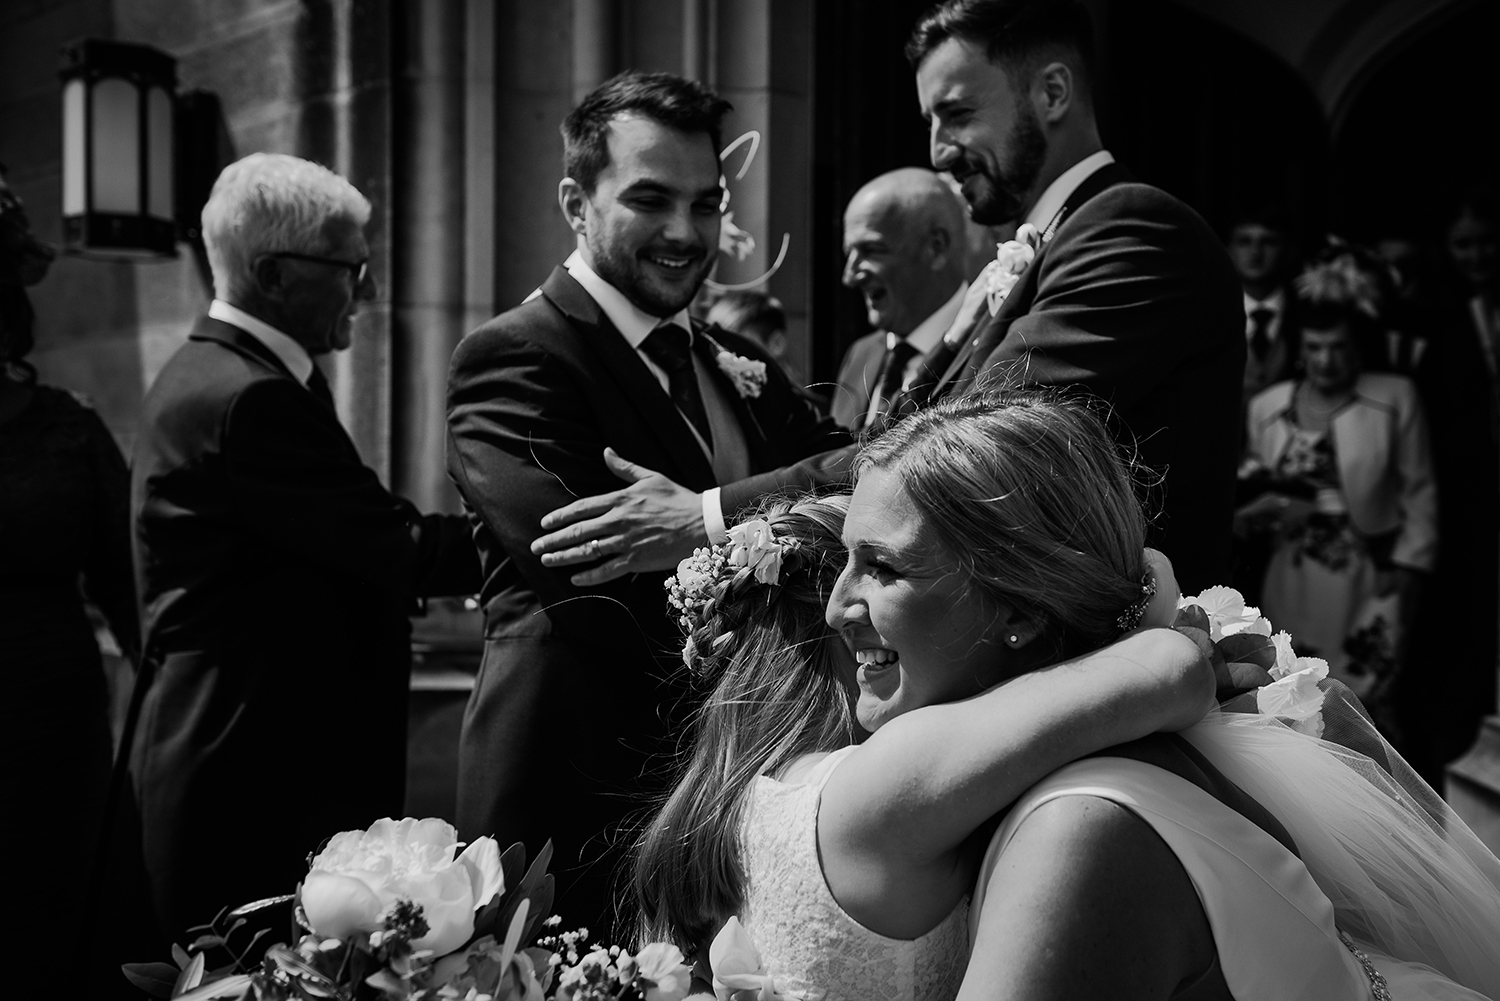 bw photo of bride and groom hugging guests